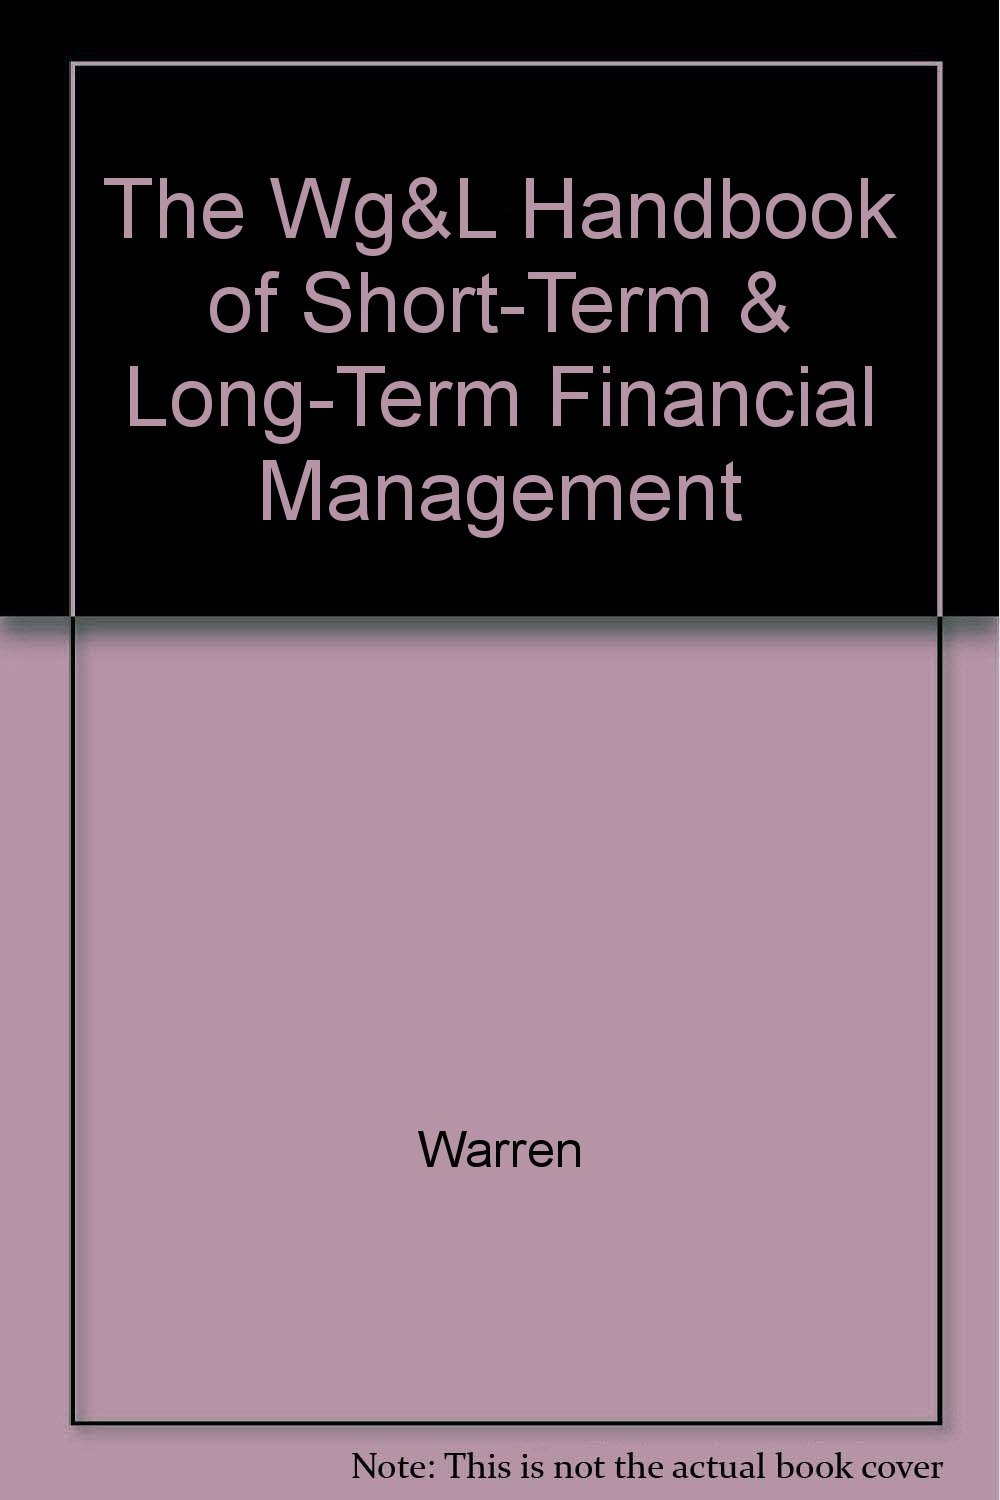 Warren, Gorham, & Lamont Handbook of Short-Term/Long-Term Financial Management